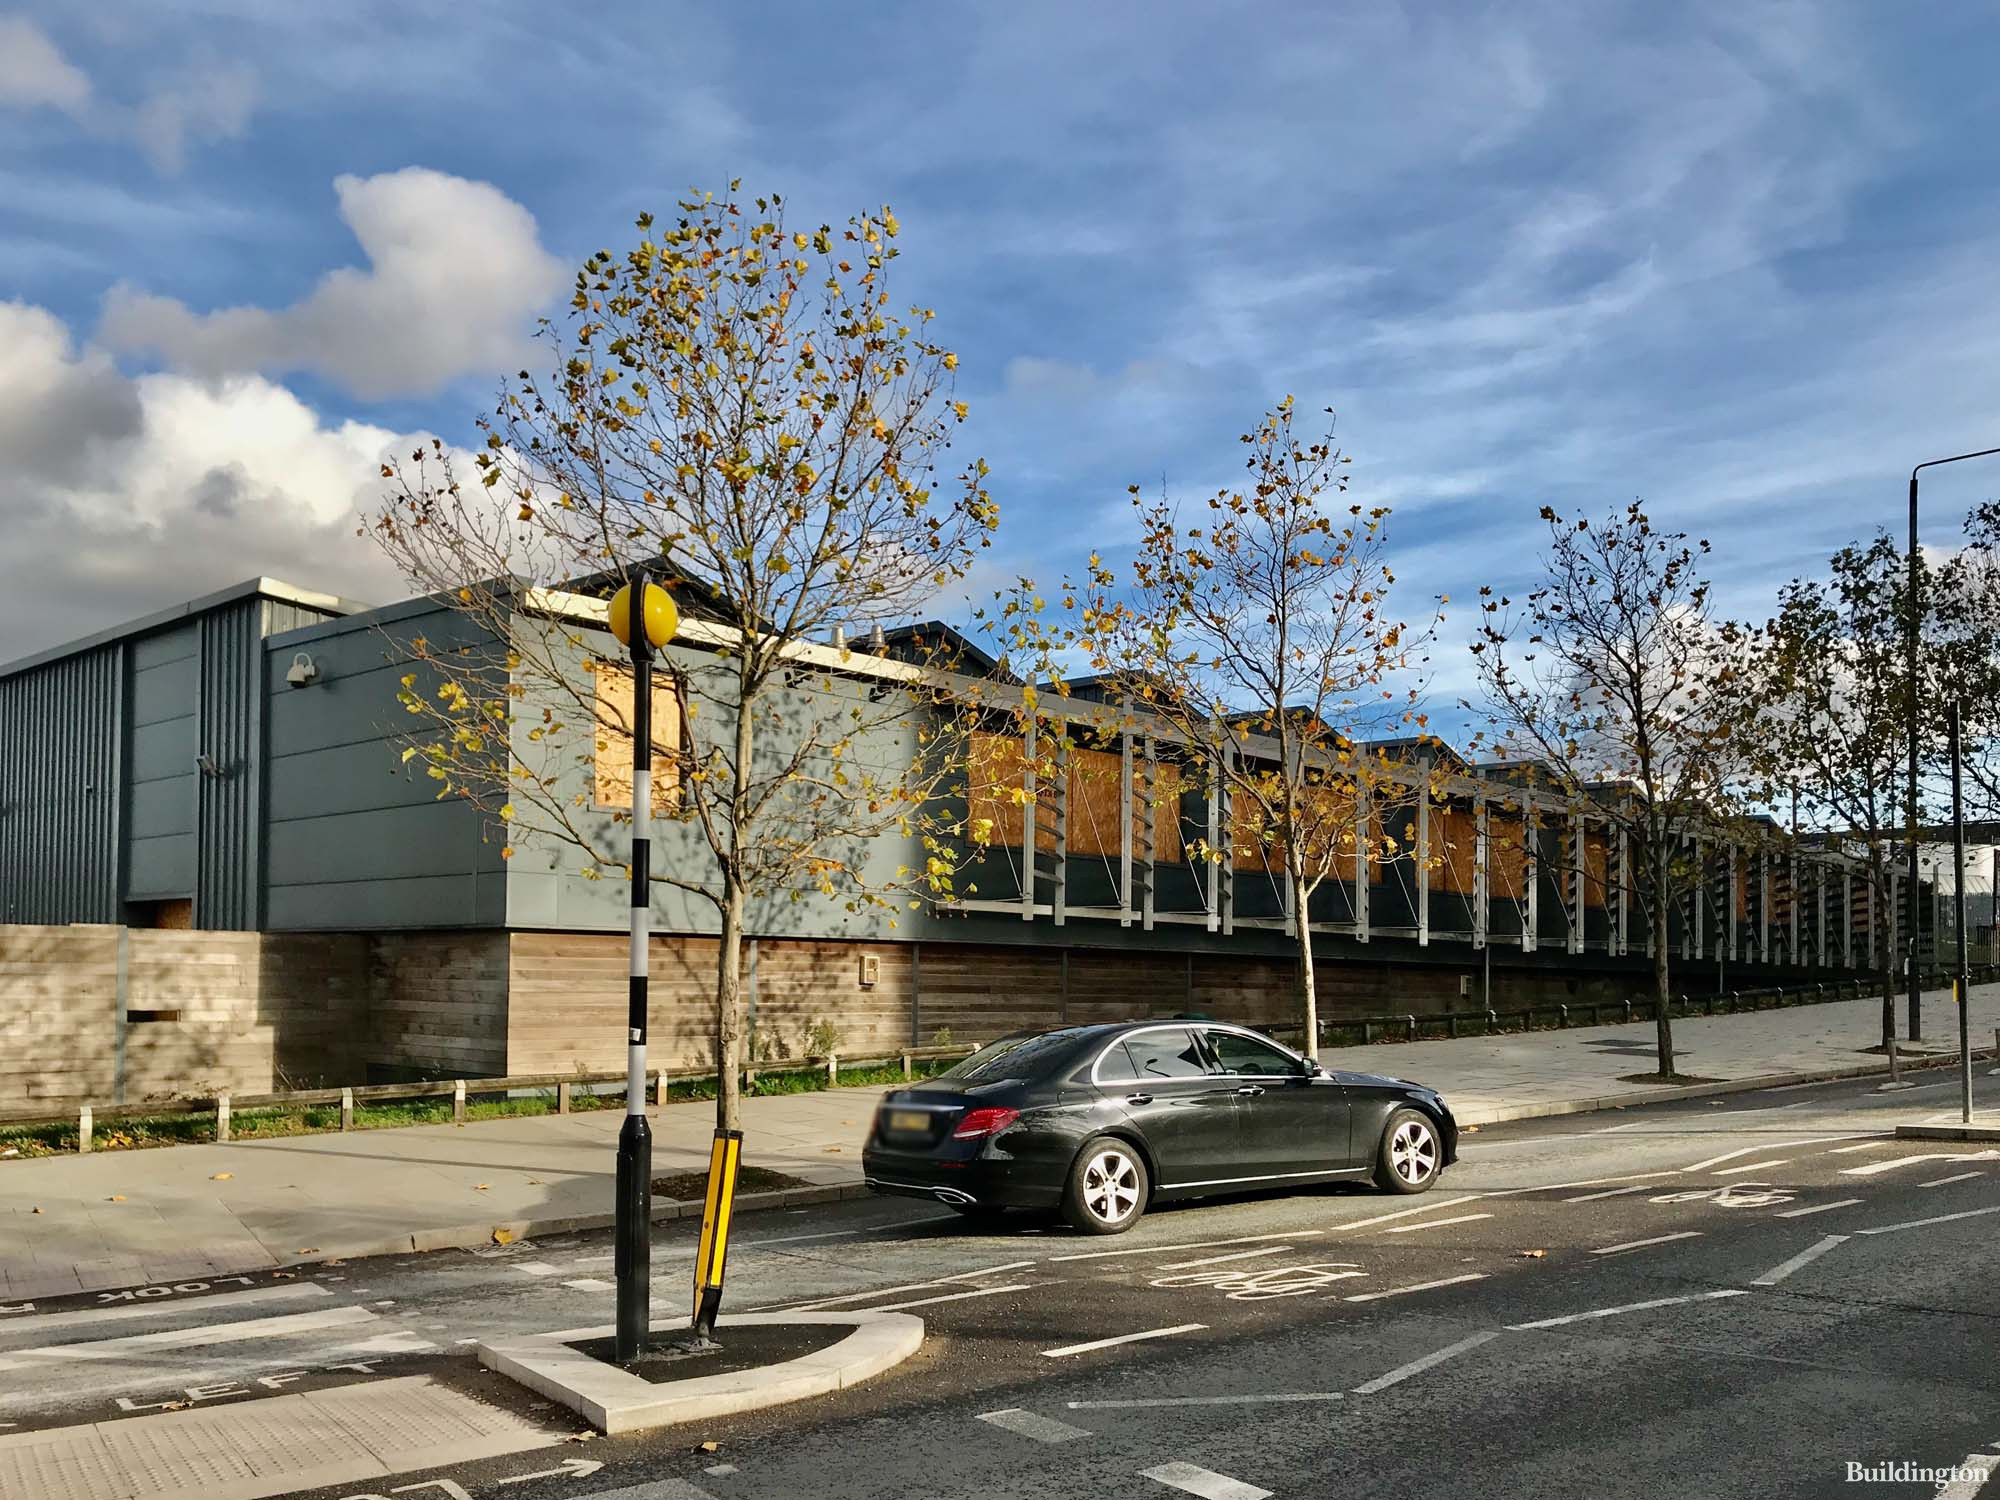 King's Cross Triangle Site in autumn 2020. King's Cross Construction Skills Centre temporary building on York Way.